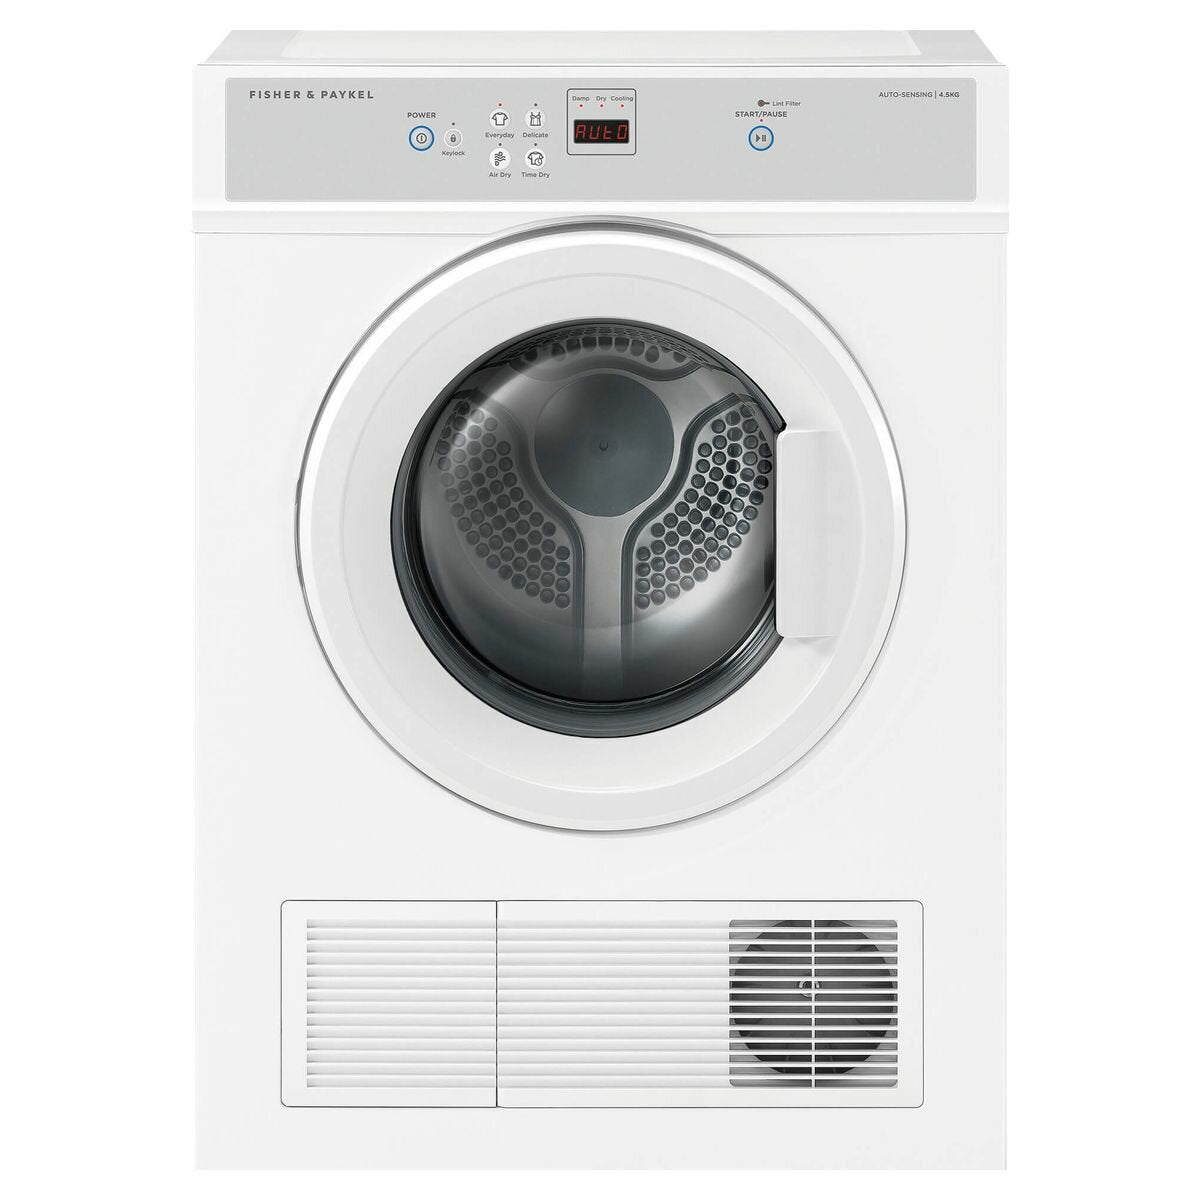 Fisher & Paykel Auto Vented Dryer 4.5 KG - Brisbane Home Appliances